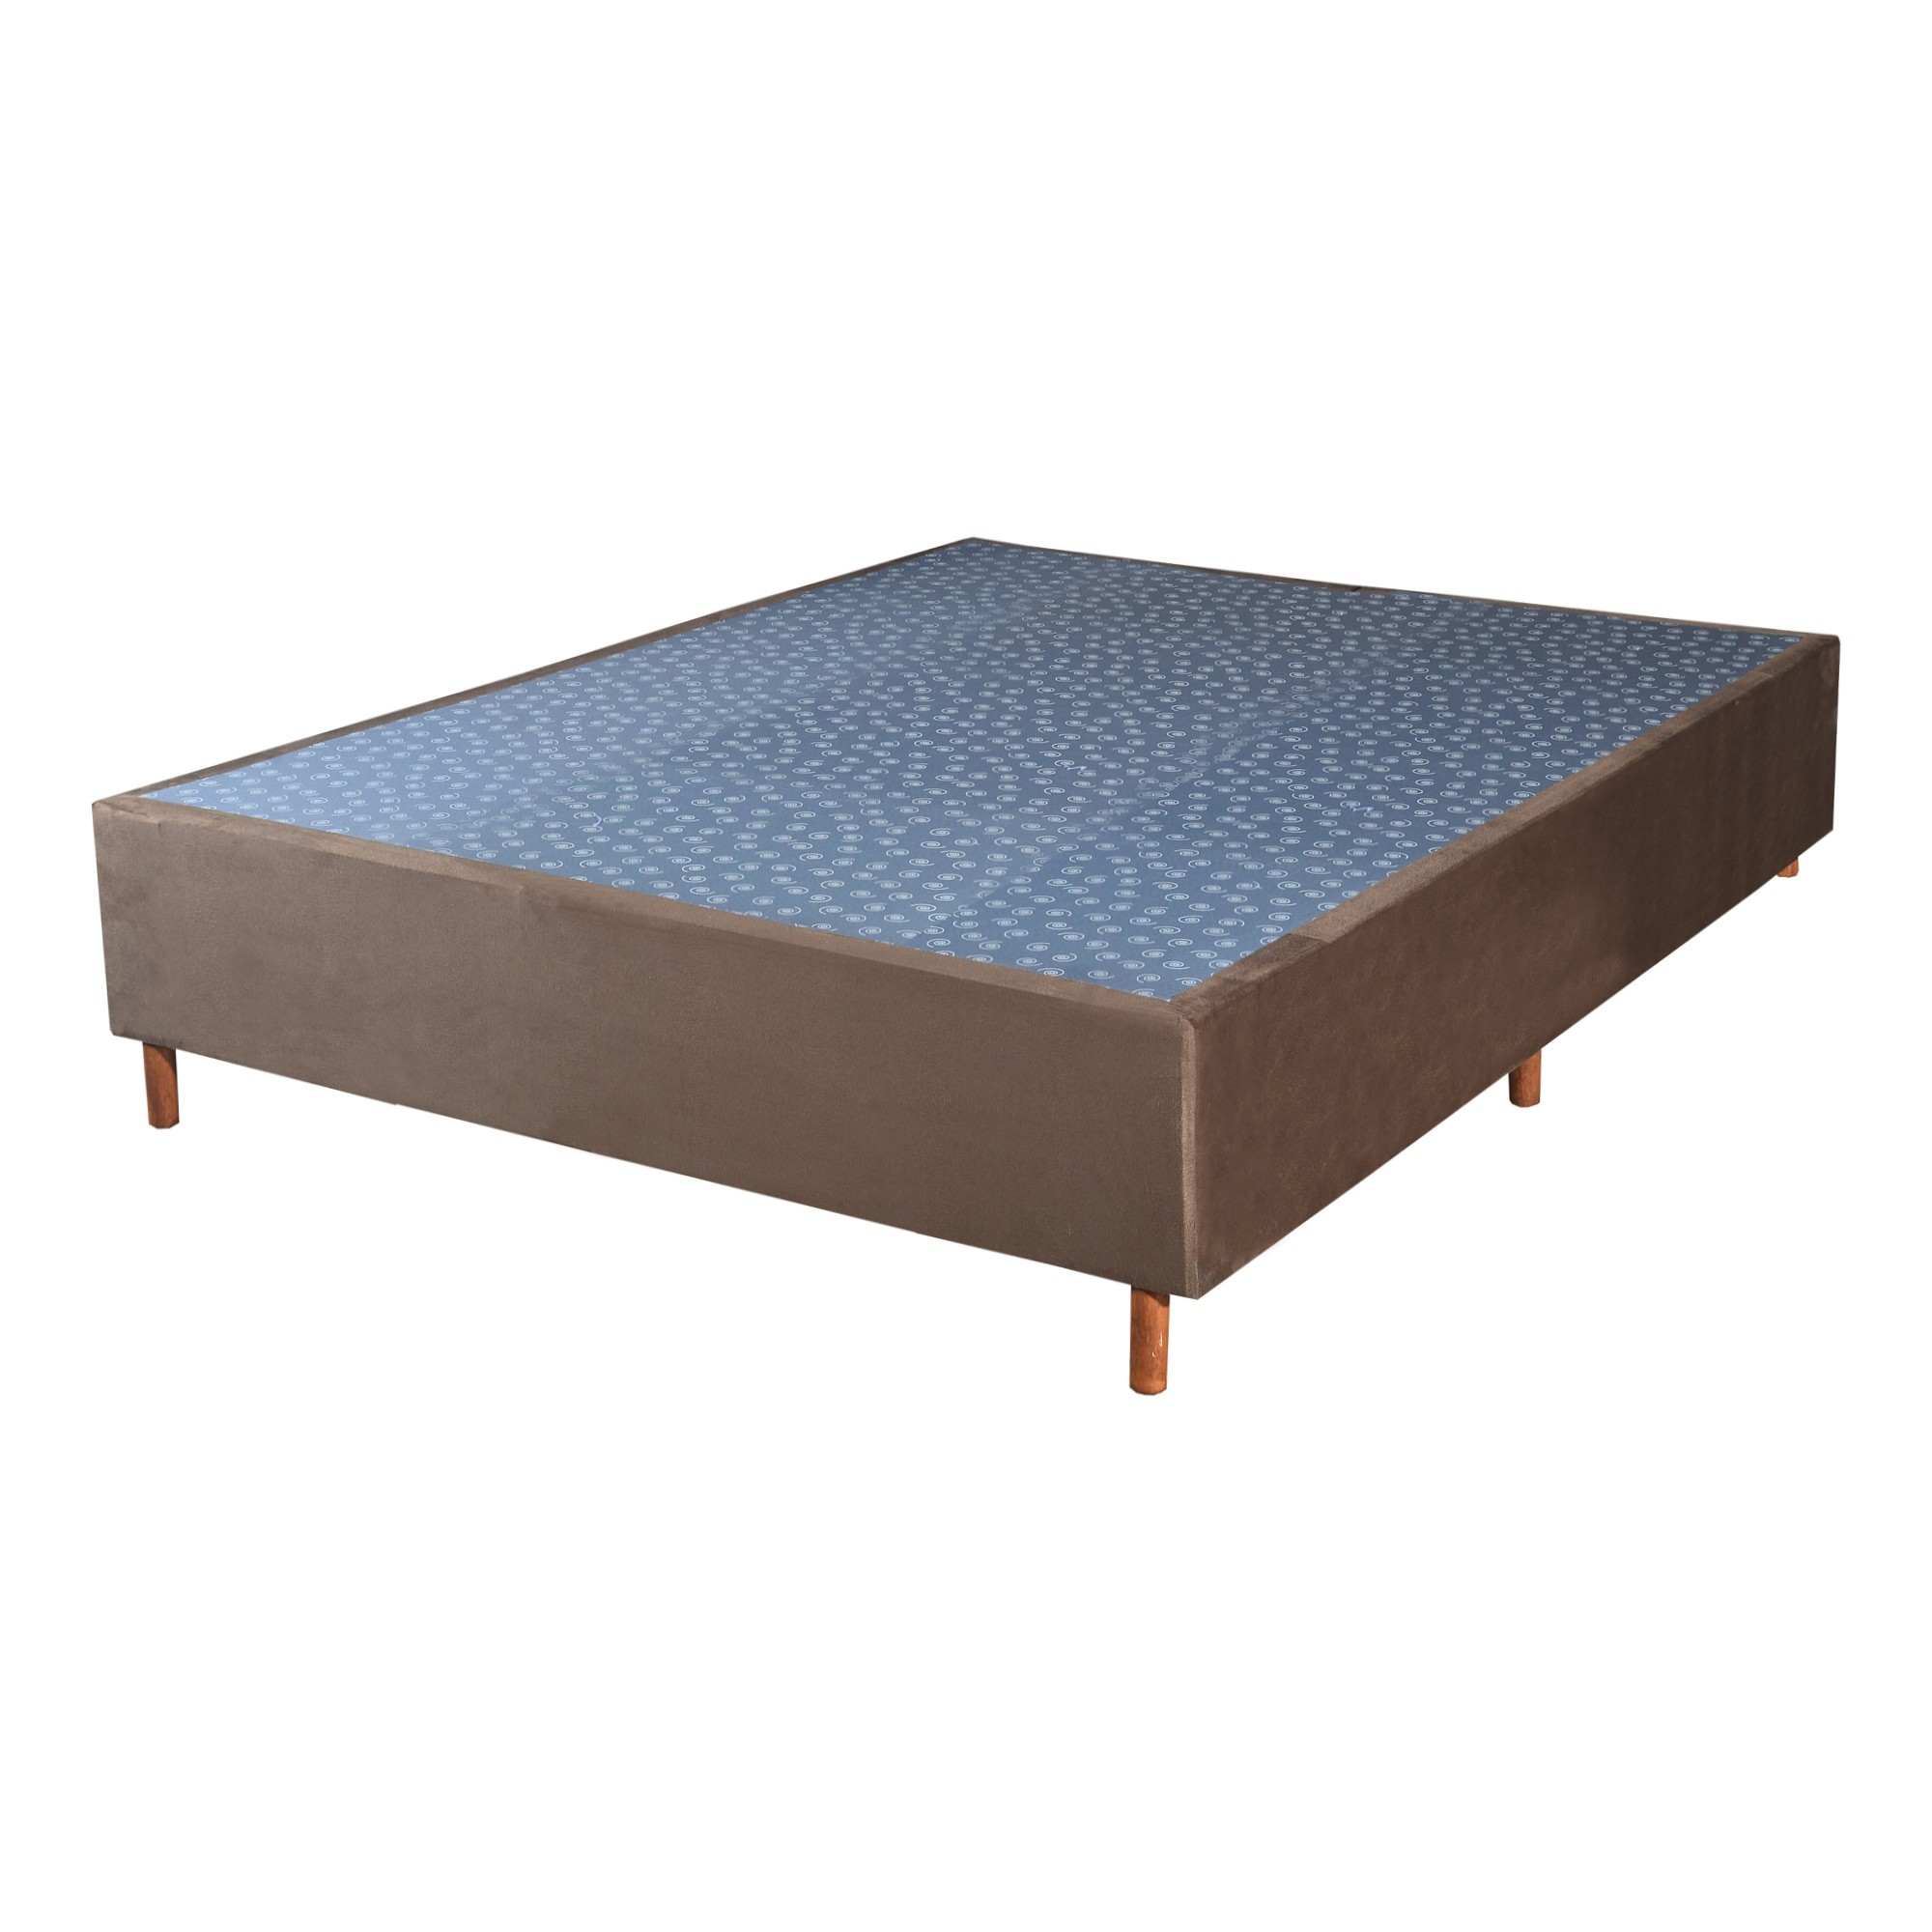 Cama Box Base Casal Veludo Marron 138x188x30